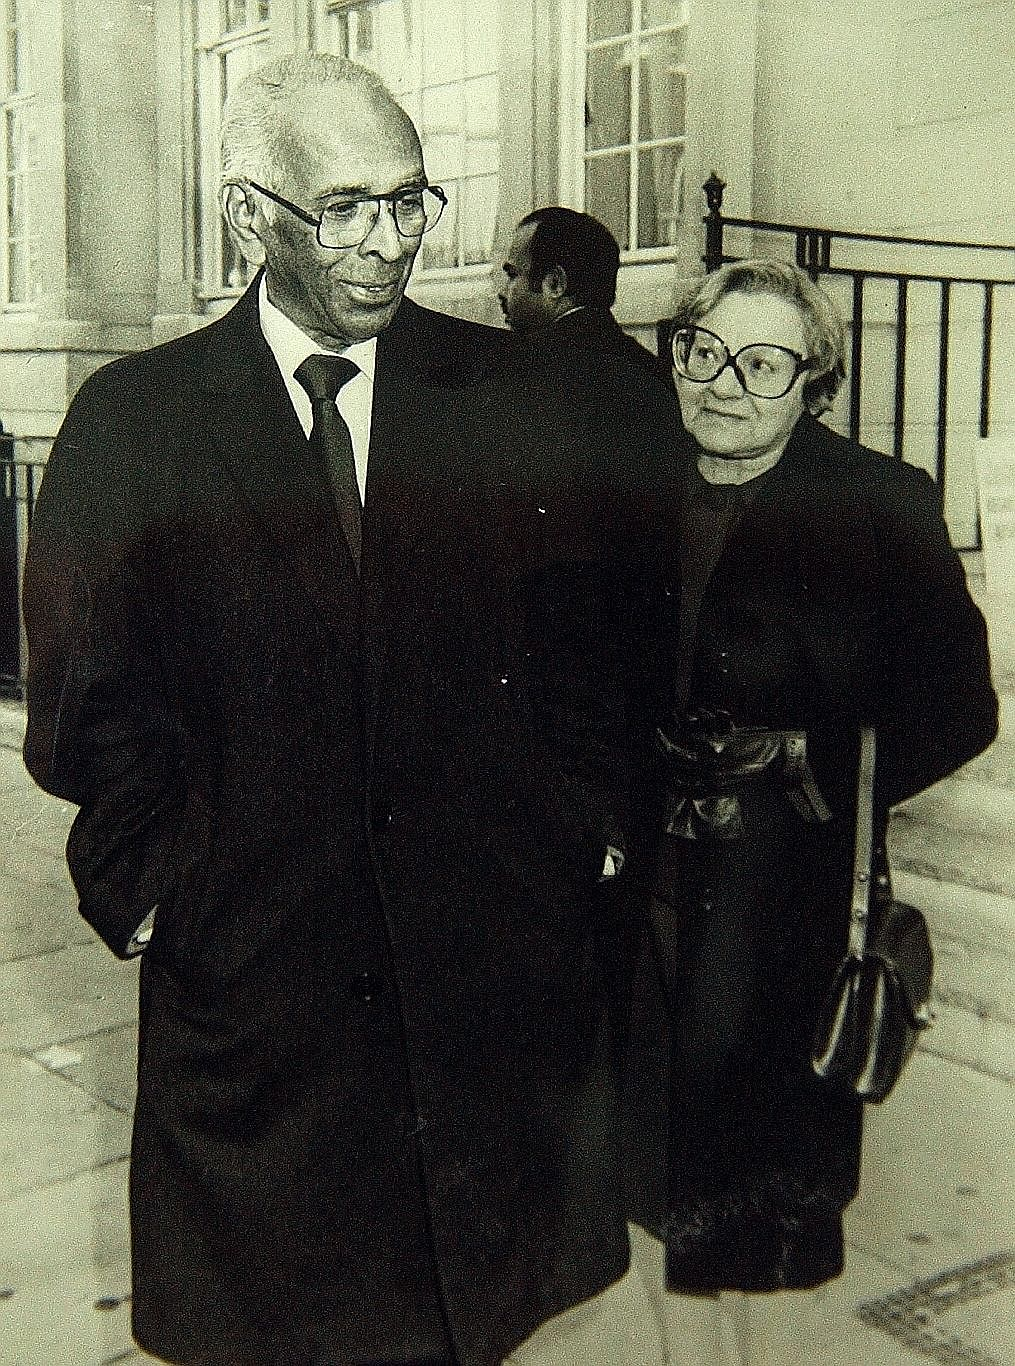 Singapore's first Minister of Foreign Affairs S. Rajaratnam and his wife Piroska. Mrs Rajaratnam, who moved to Singapore with her husband in 1948, loved her new homeland but never forgot Hungary and her Hungarian family.